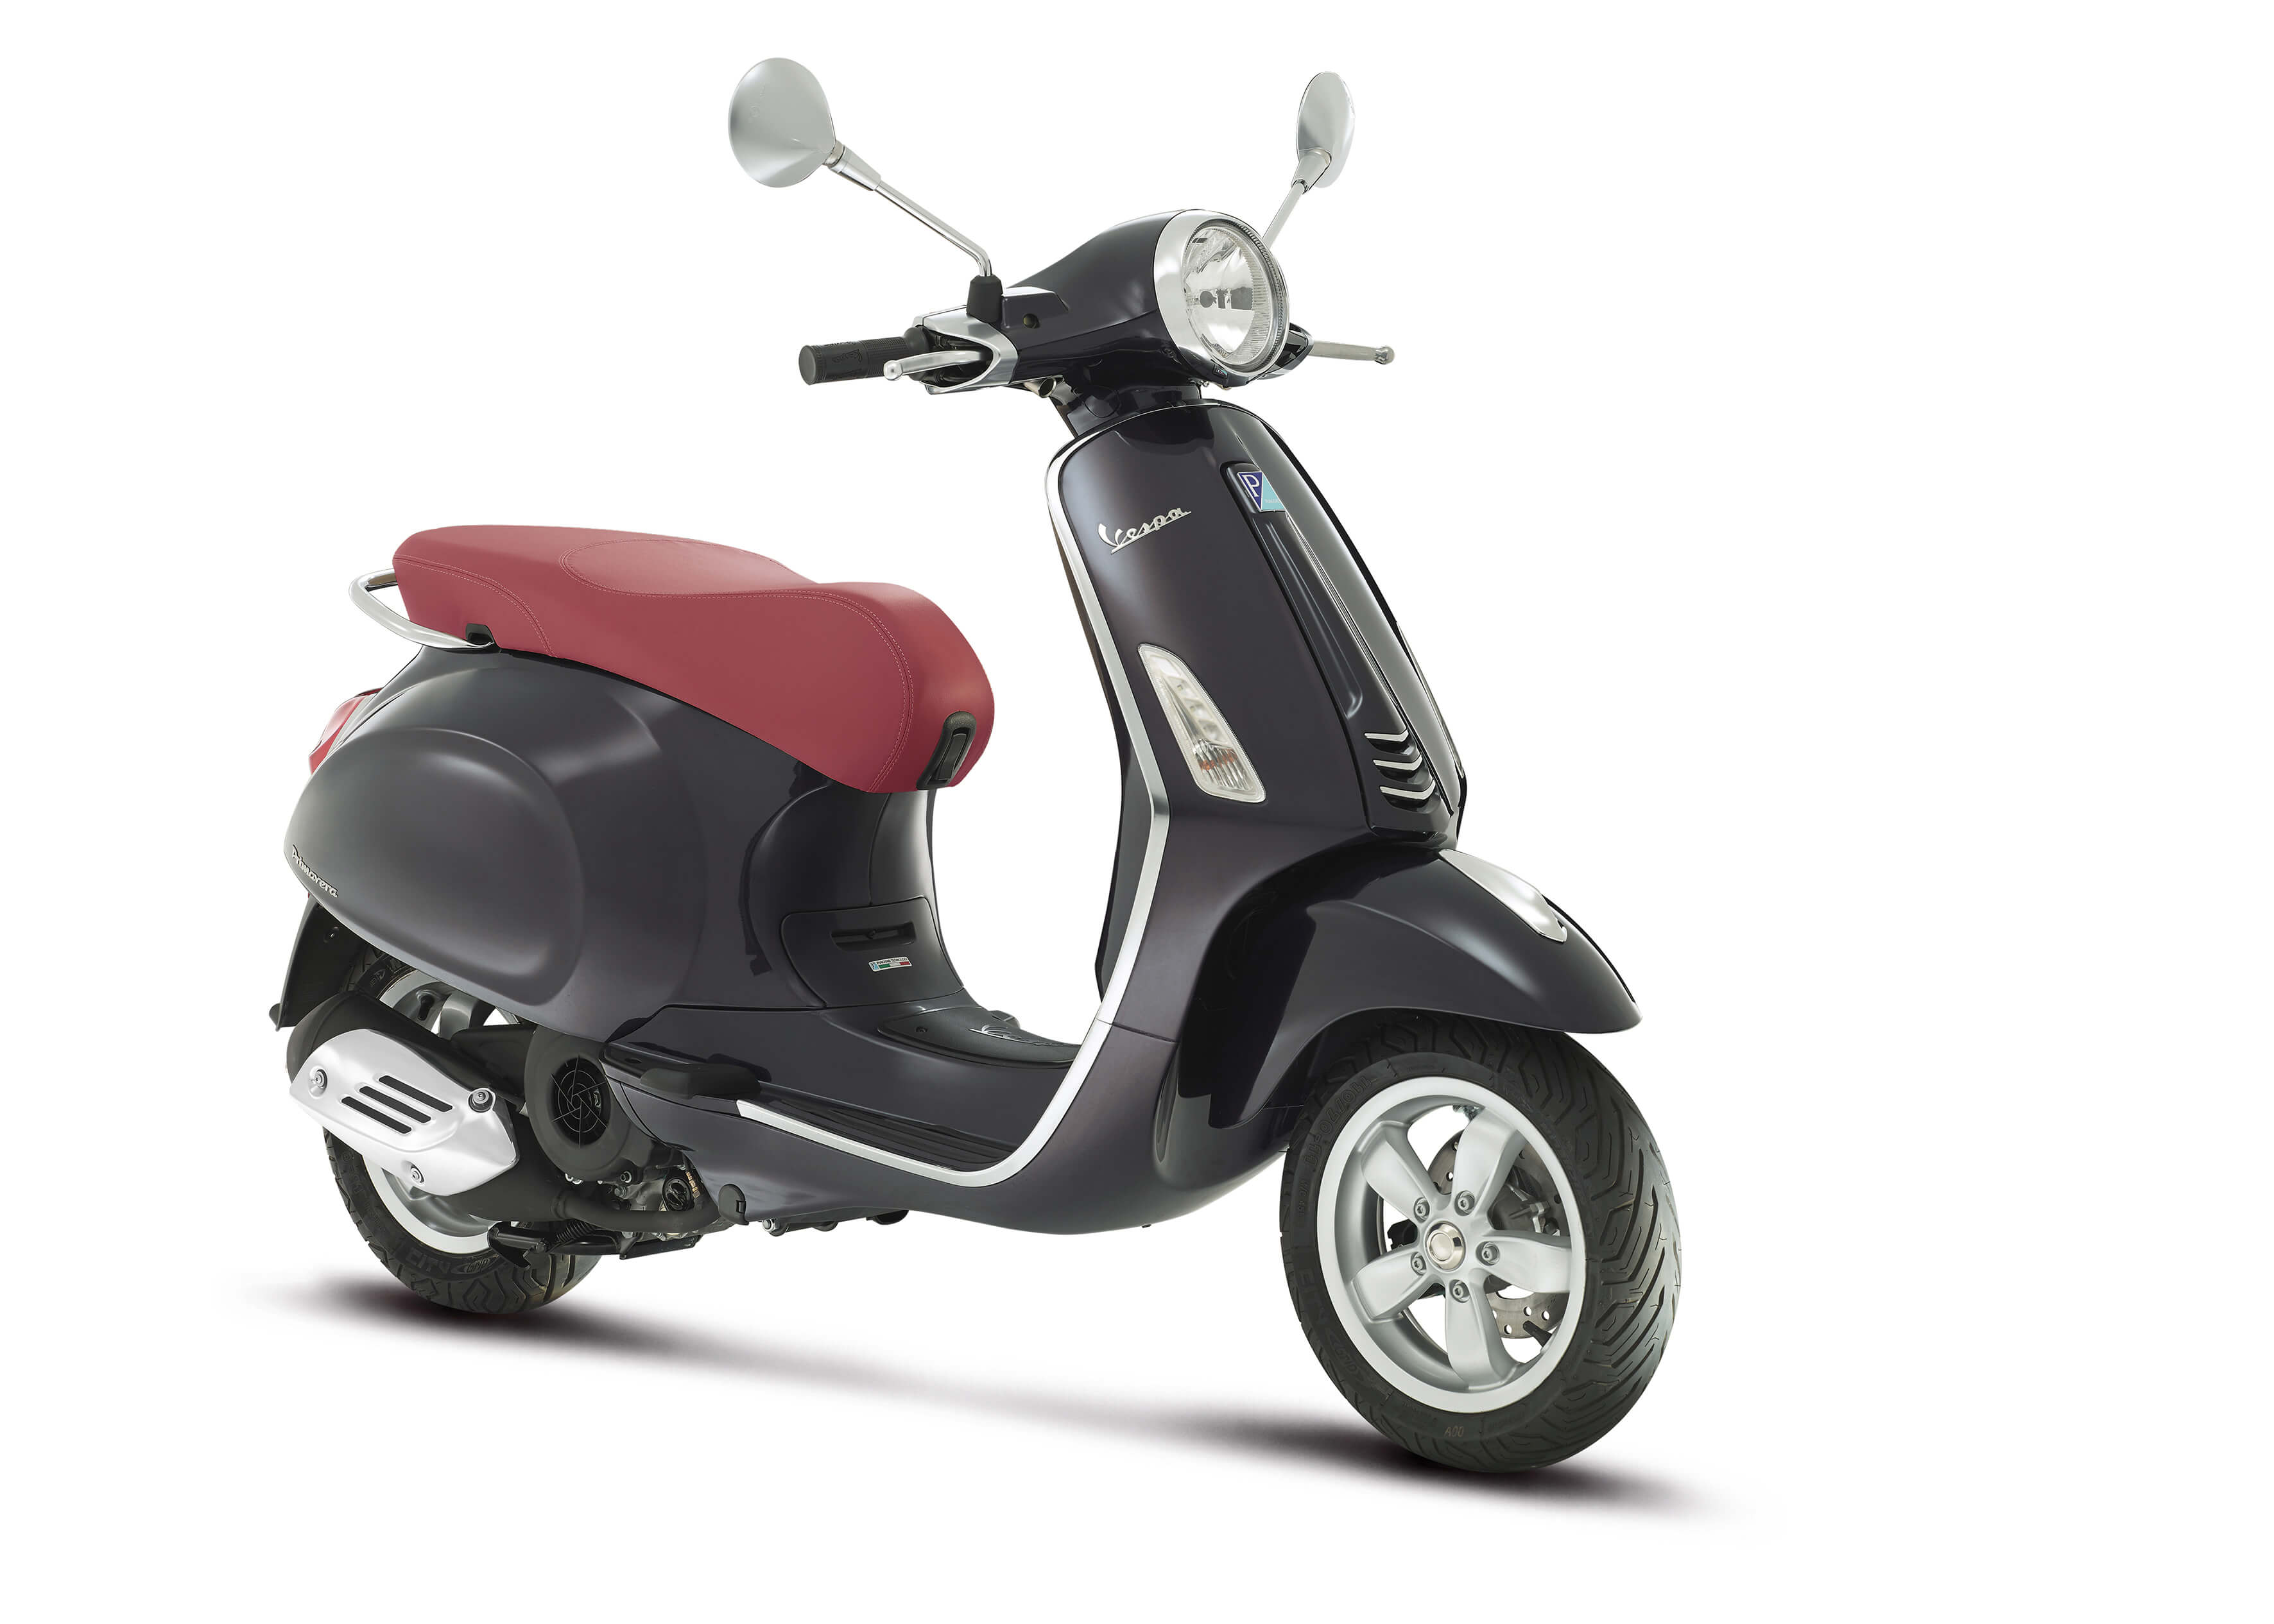 Vespa FI Price in India, FI Mileage, Images, Specifications